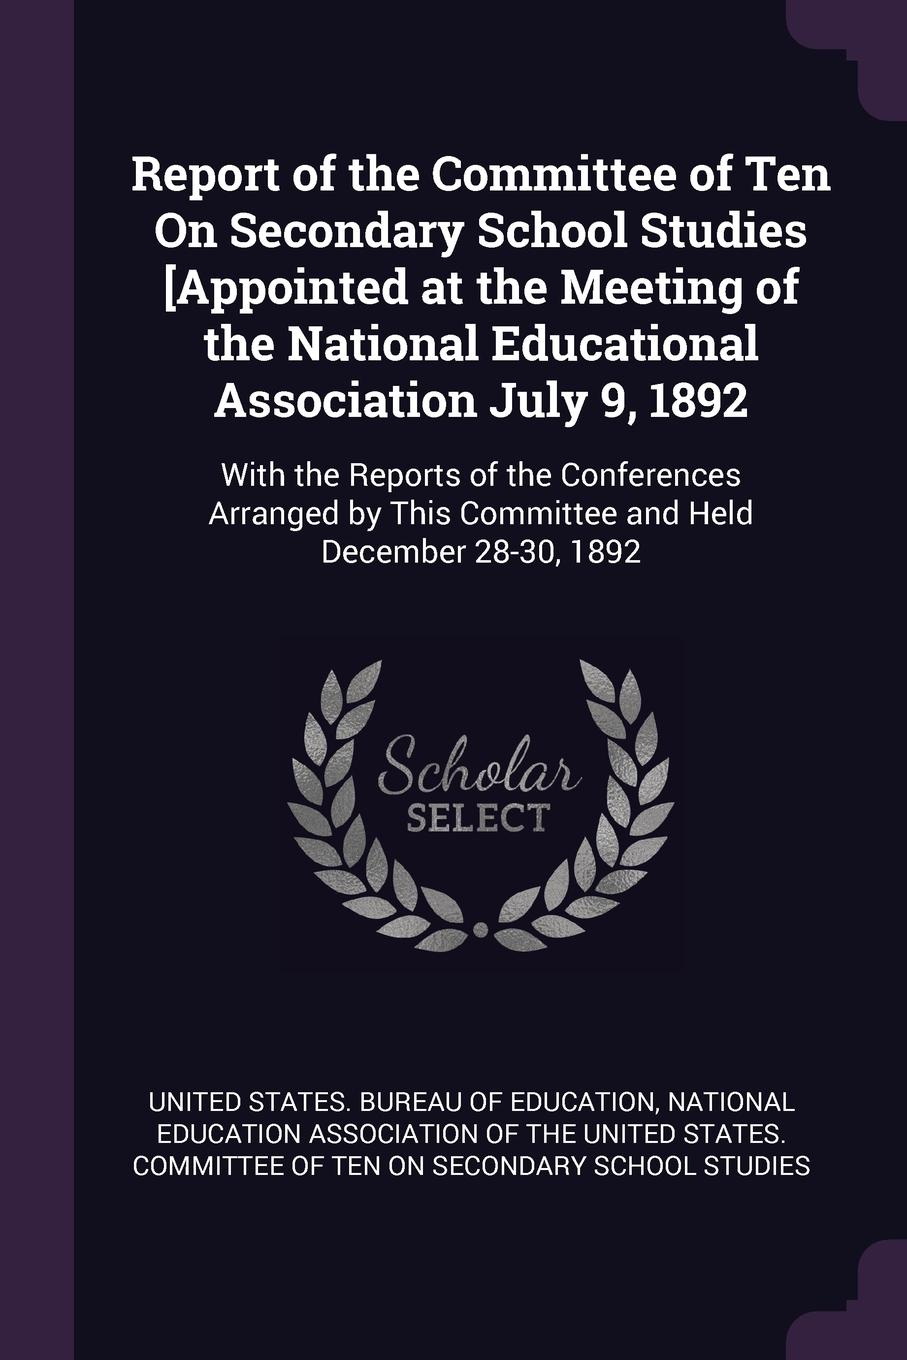 Report-of-the-Committee-of-Ten-On-Secondary-School-Studies-Appointed-at-the-Meeting-of-the-National-Educational-Association-July-9-1892-With-the-Repor